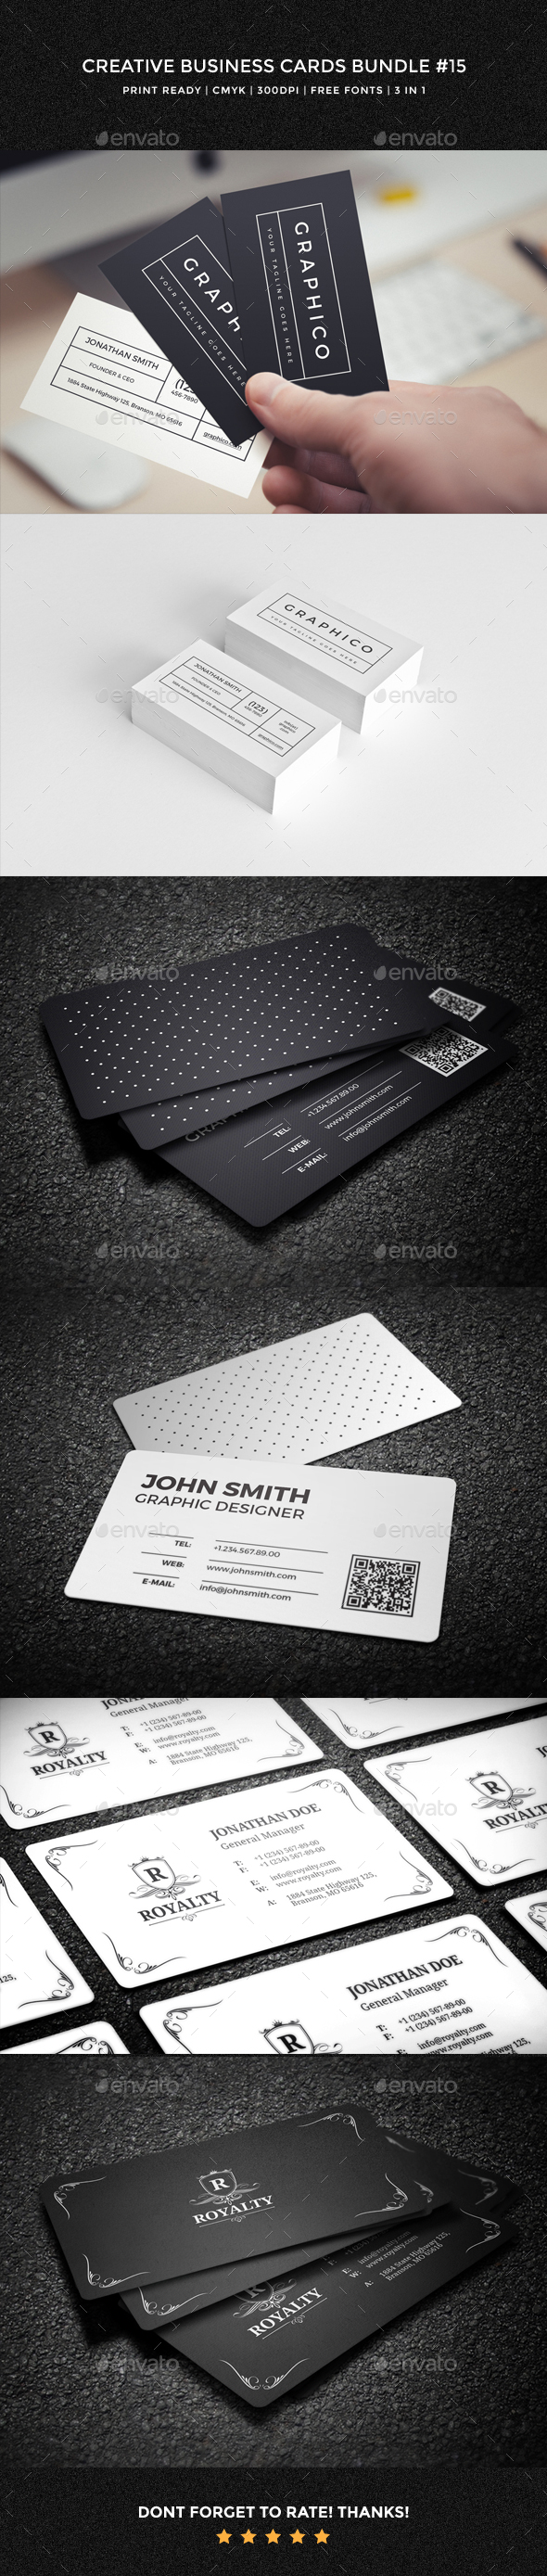 Creative business cards bundle 15 by nazdrag graphicriver creative business cards bundle 15 creative business cards reheart Images